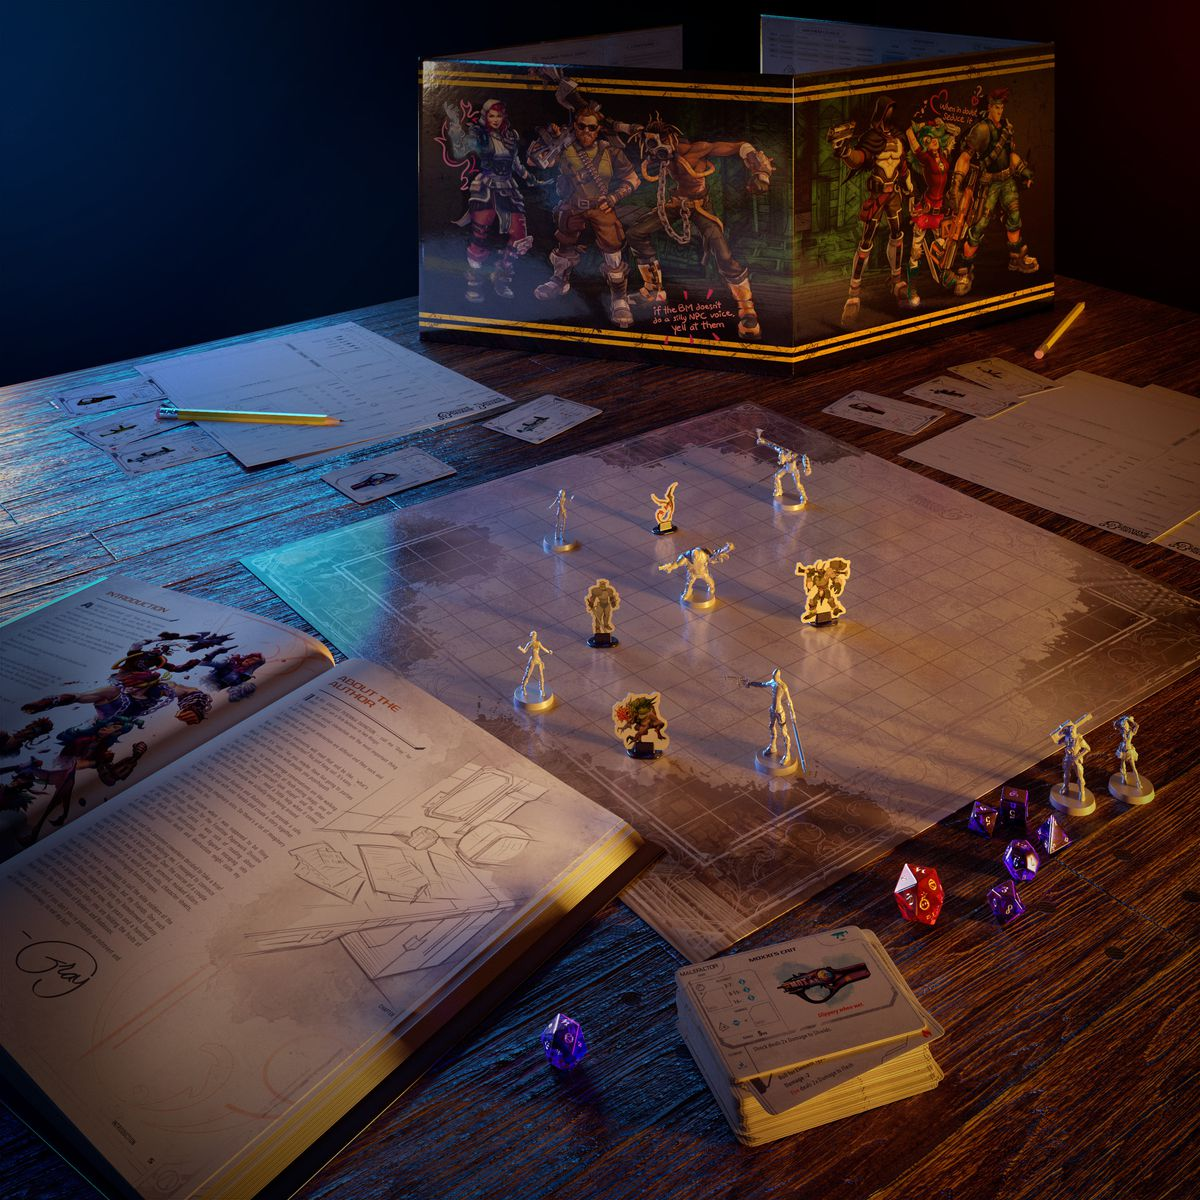 A book, Bunker Master's screen, and dice with custom miniatures on a table.